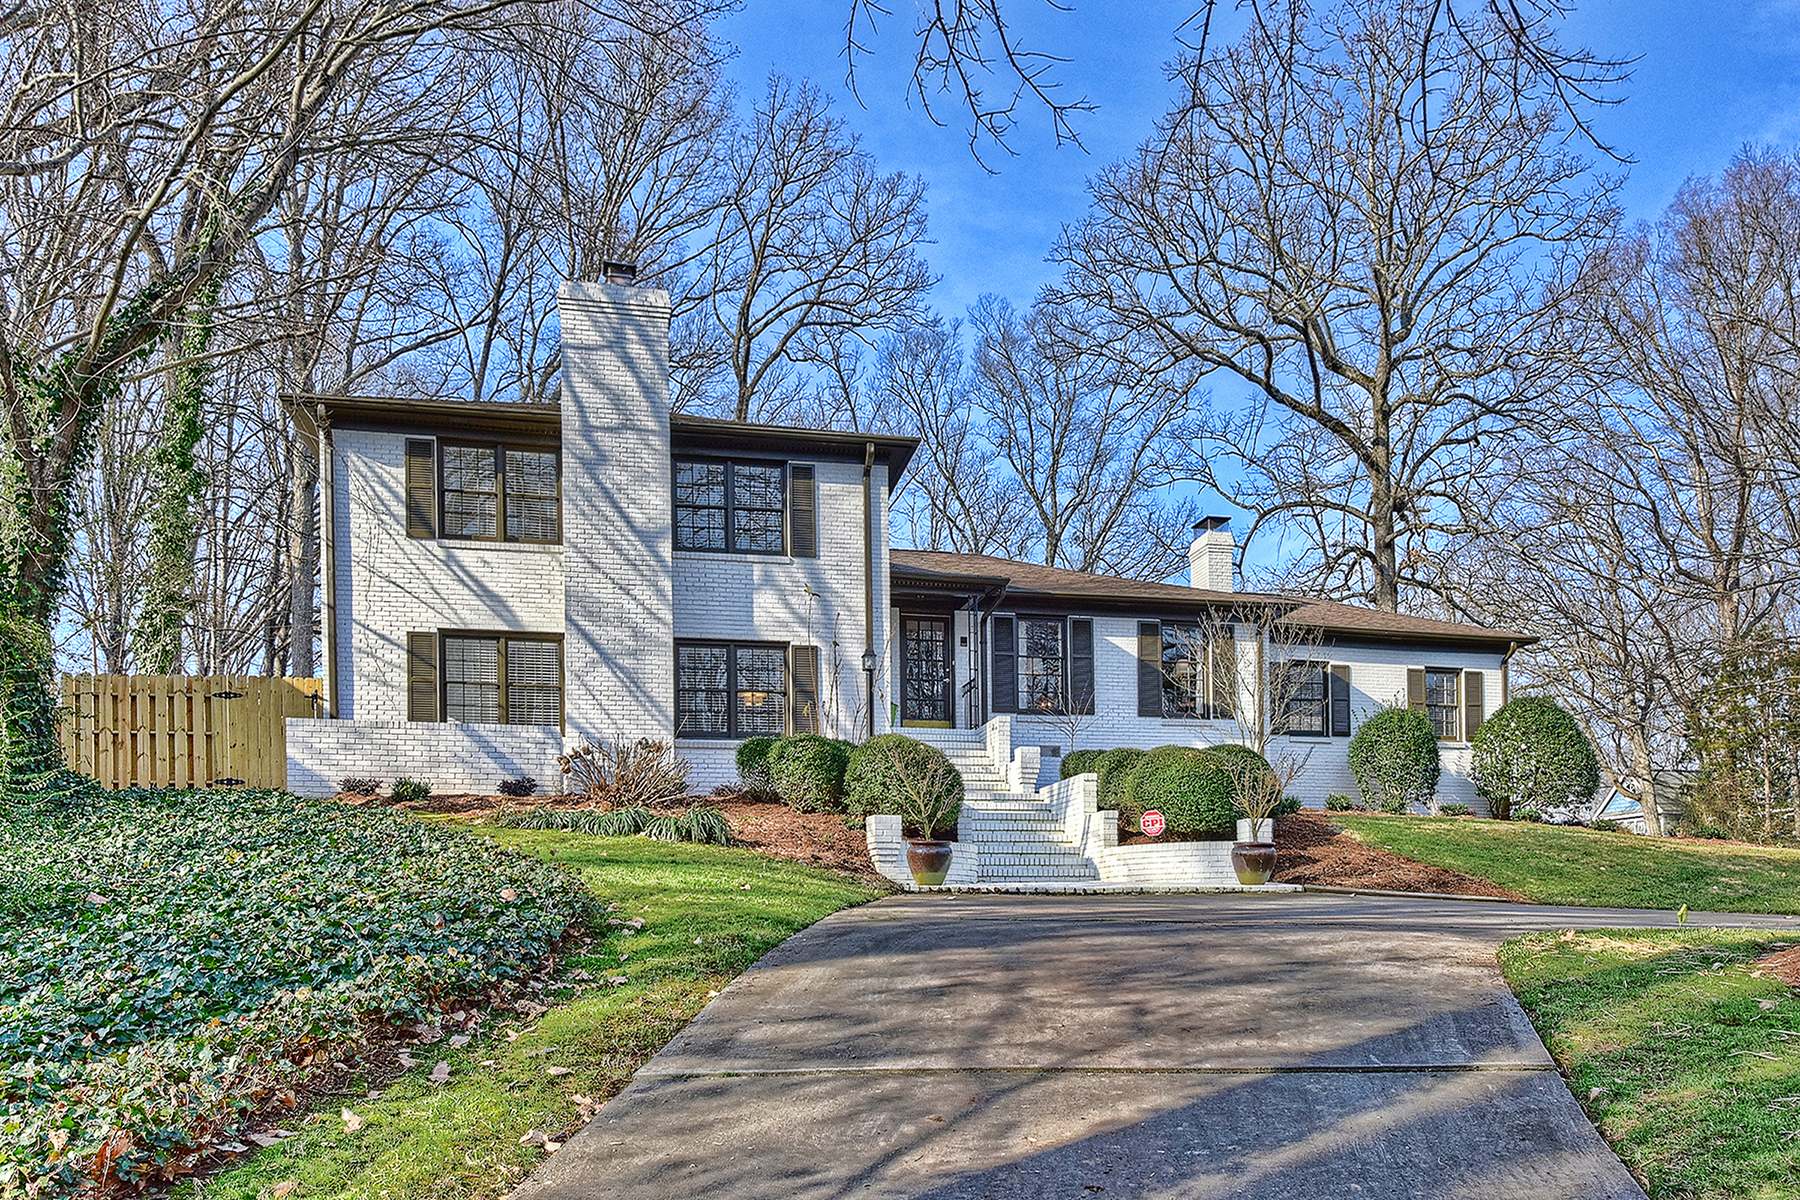 Single Family Home for Sale at SHERWOOD FOREST 5300 Doncaster Dr, Charlotte, North Carolina 28211 United States